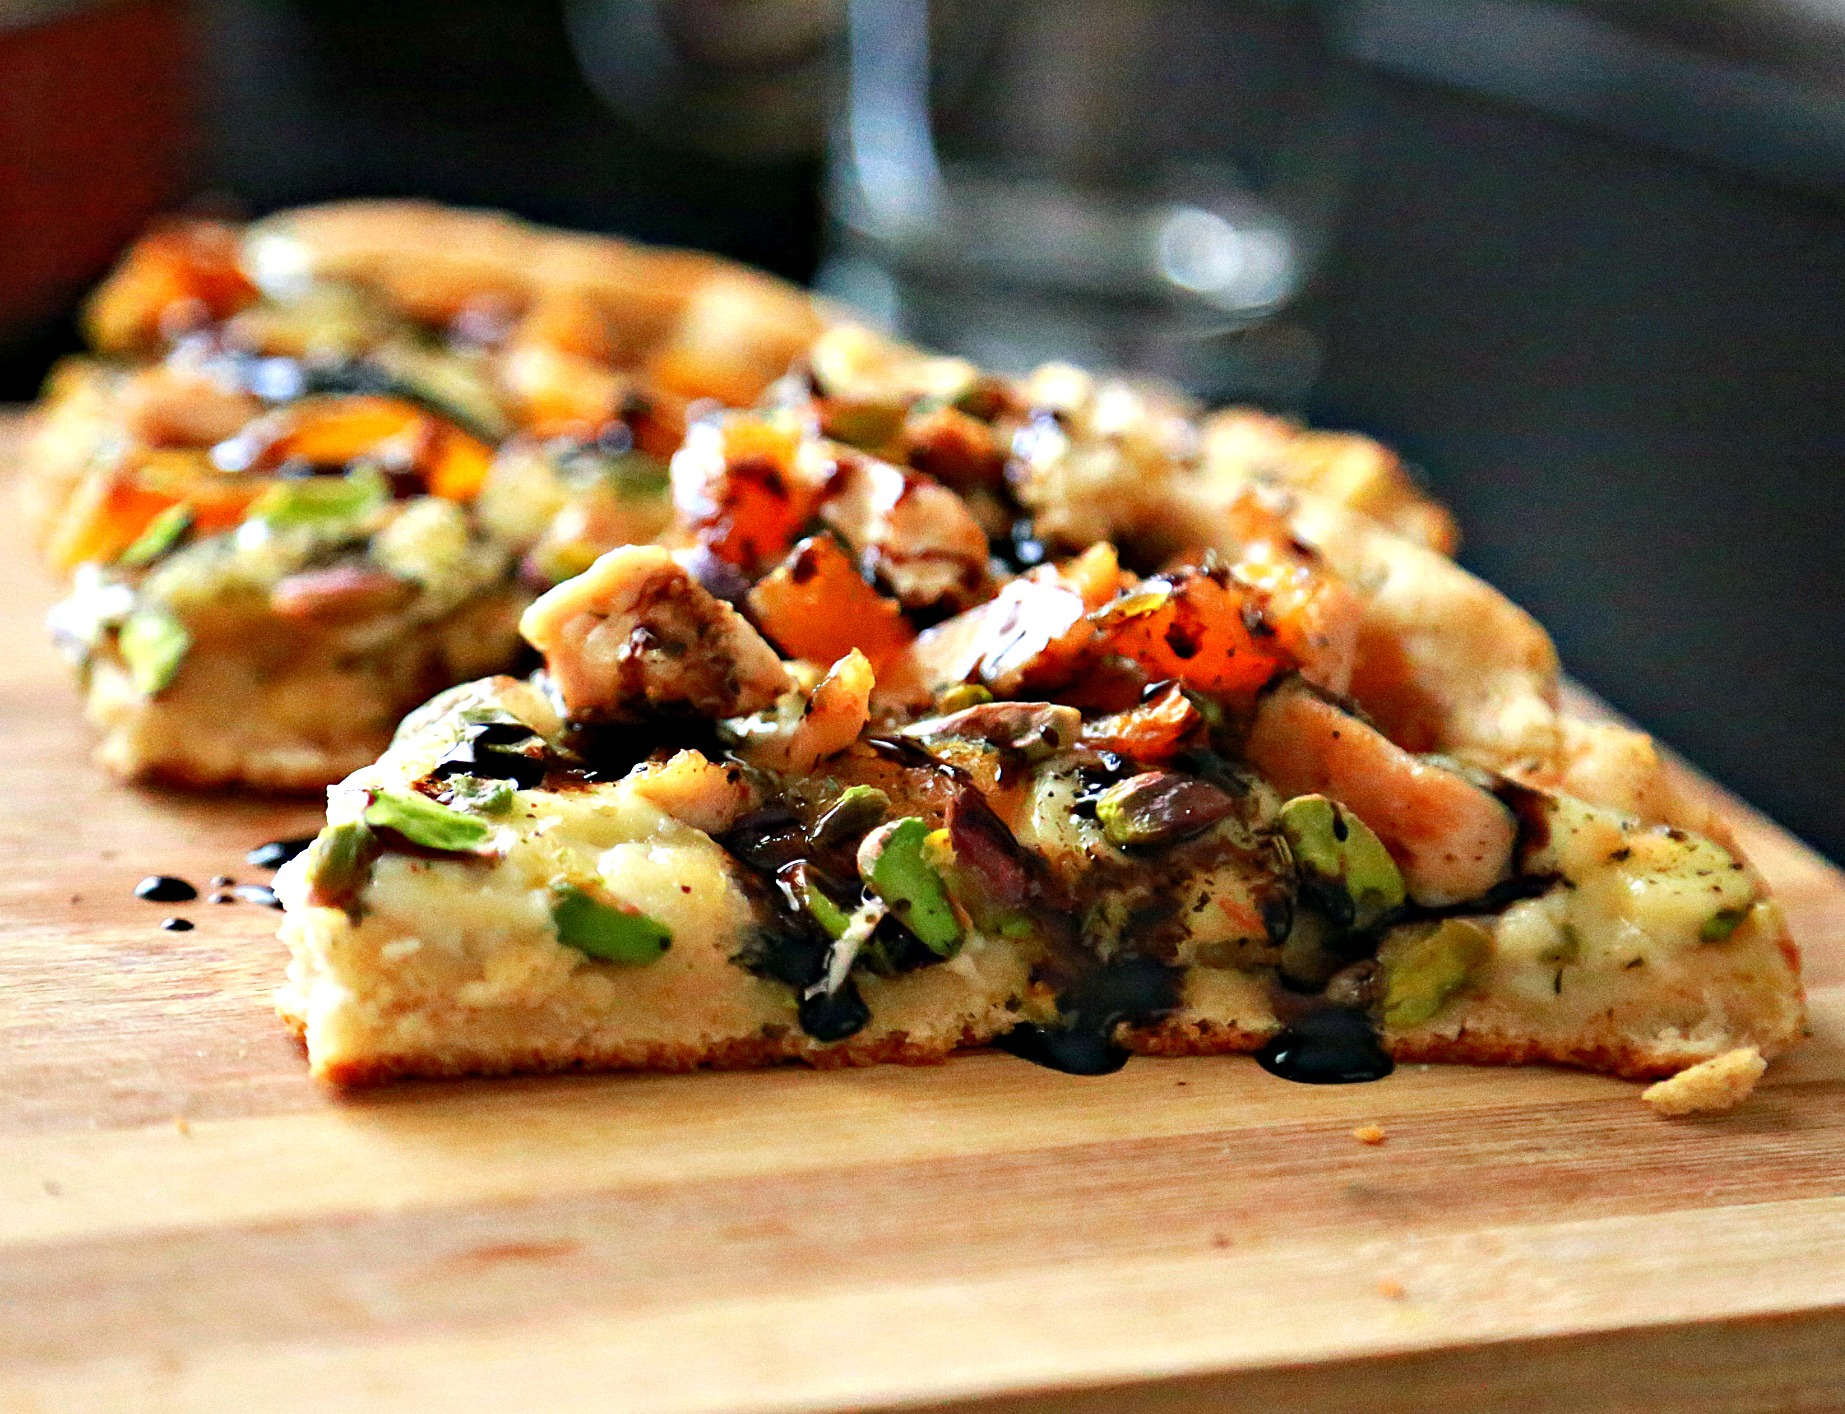 Brie pizza with dried arptiocts and balsamic glaze